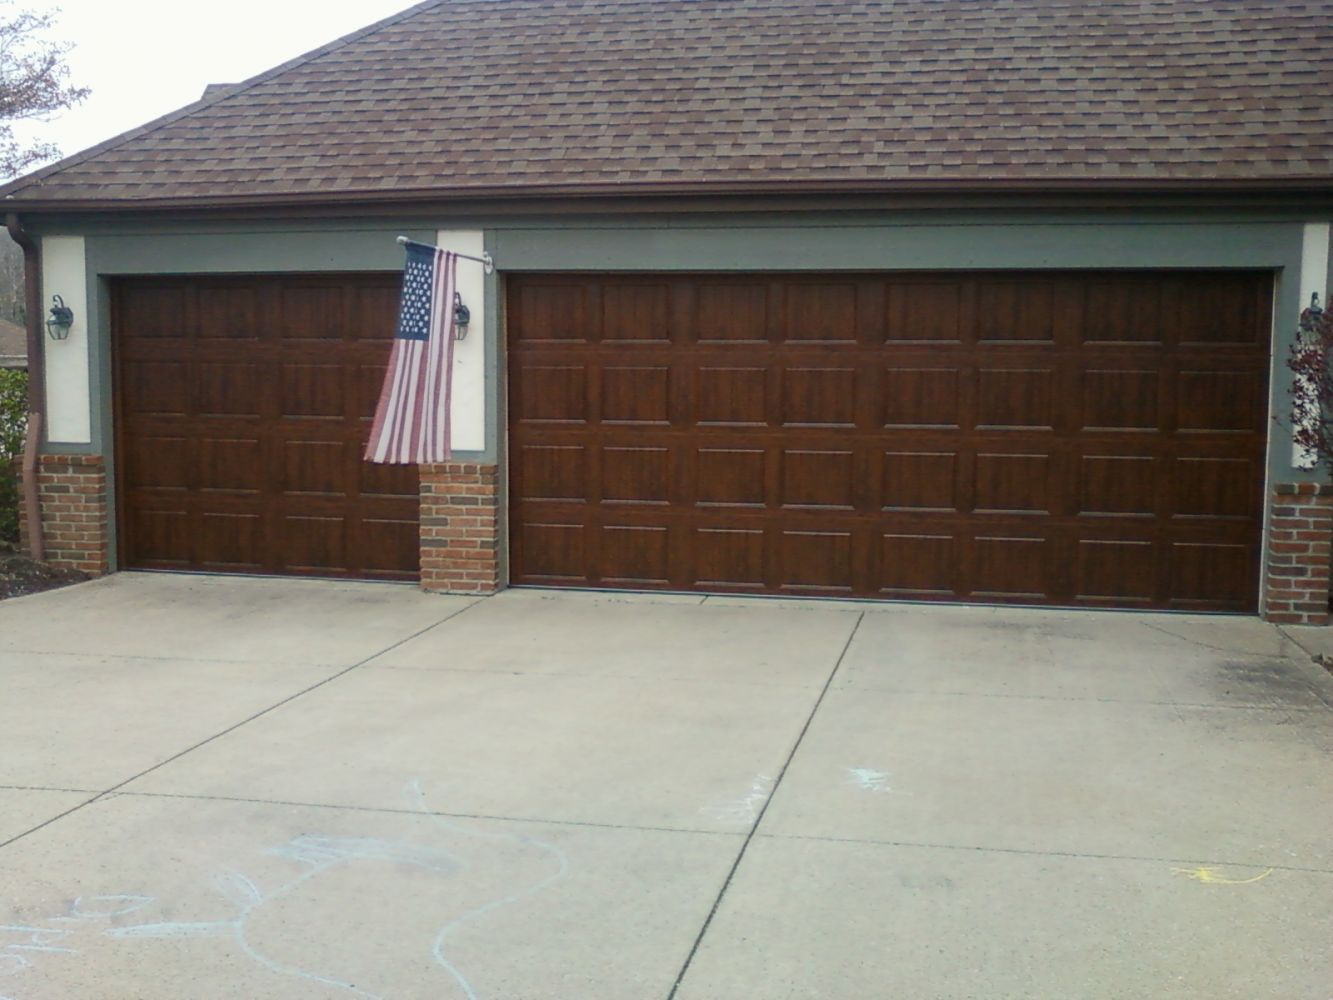 Residental garage door repairs columbia station oh for Wood grain garage doors